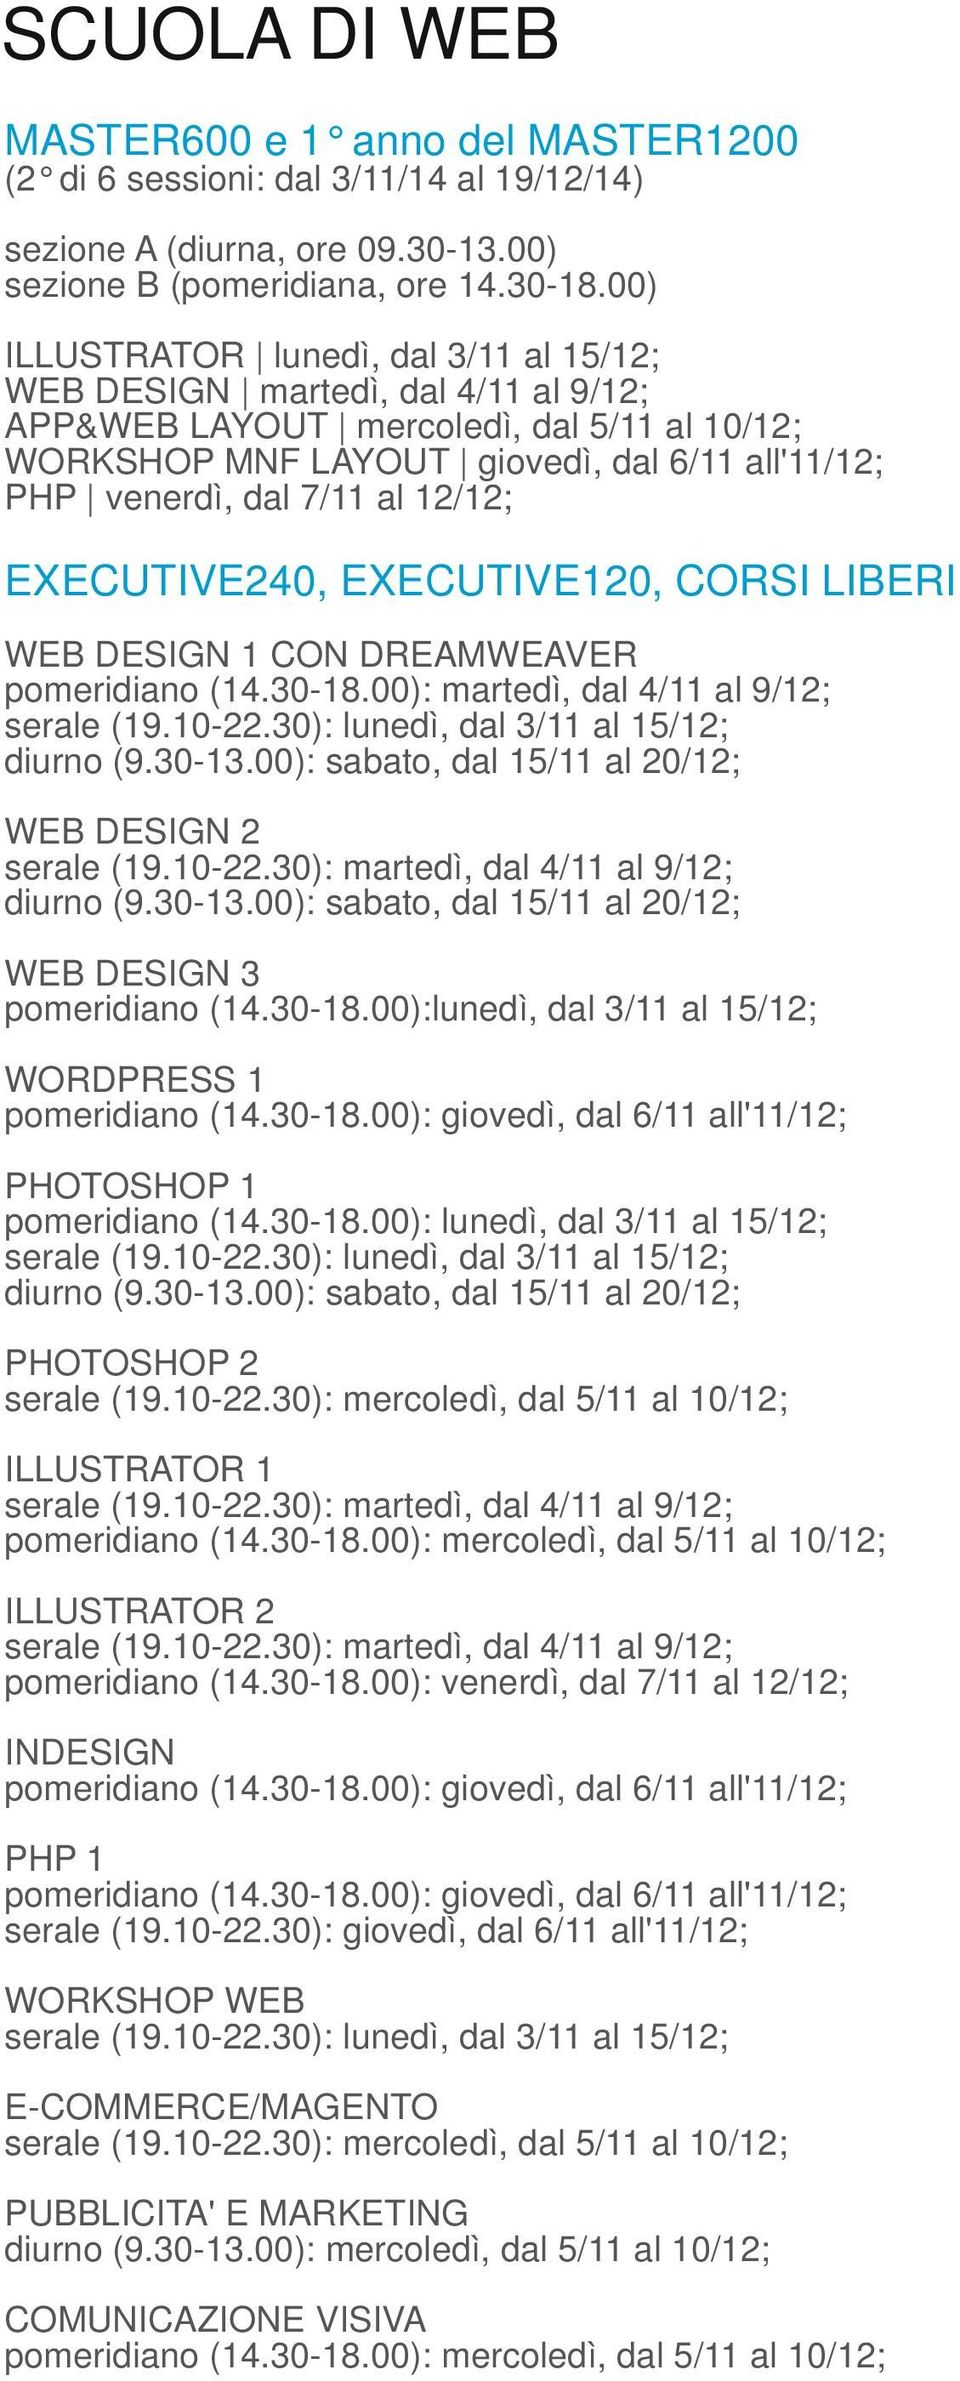 WORKSHOP MNF LAYOUT giovedì, dal 6/11 all'11/12; PHP venerdì, dal 7/11 al 12/12; WEB DESIGN 1 CON DREAMWEAVER WEB DESIGN 2 WEB